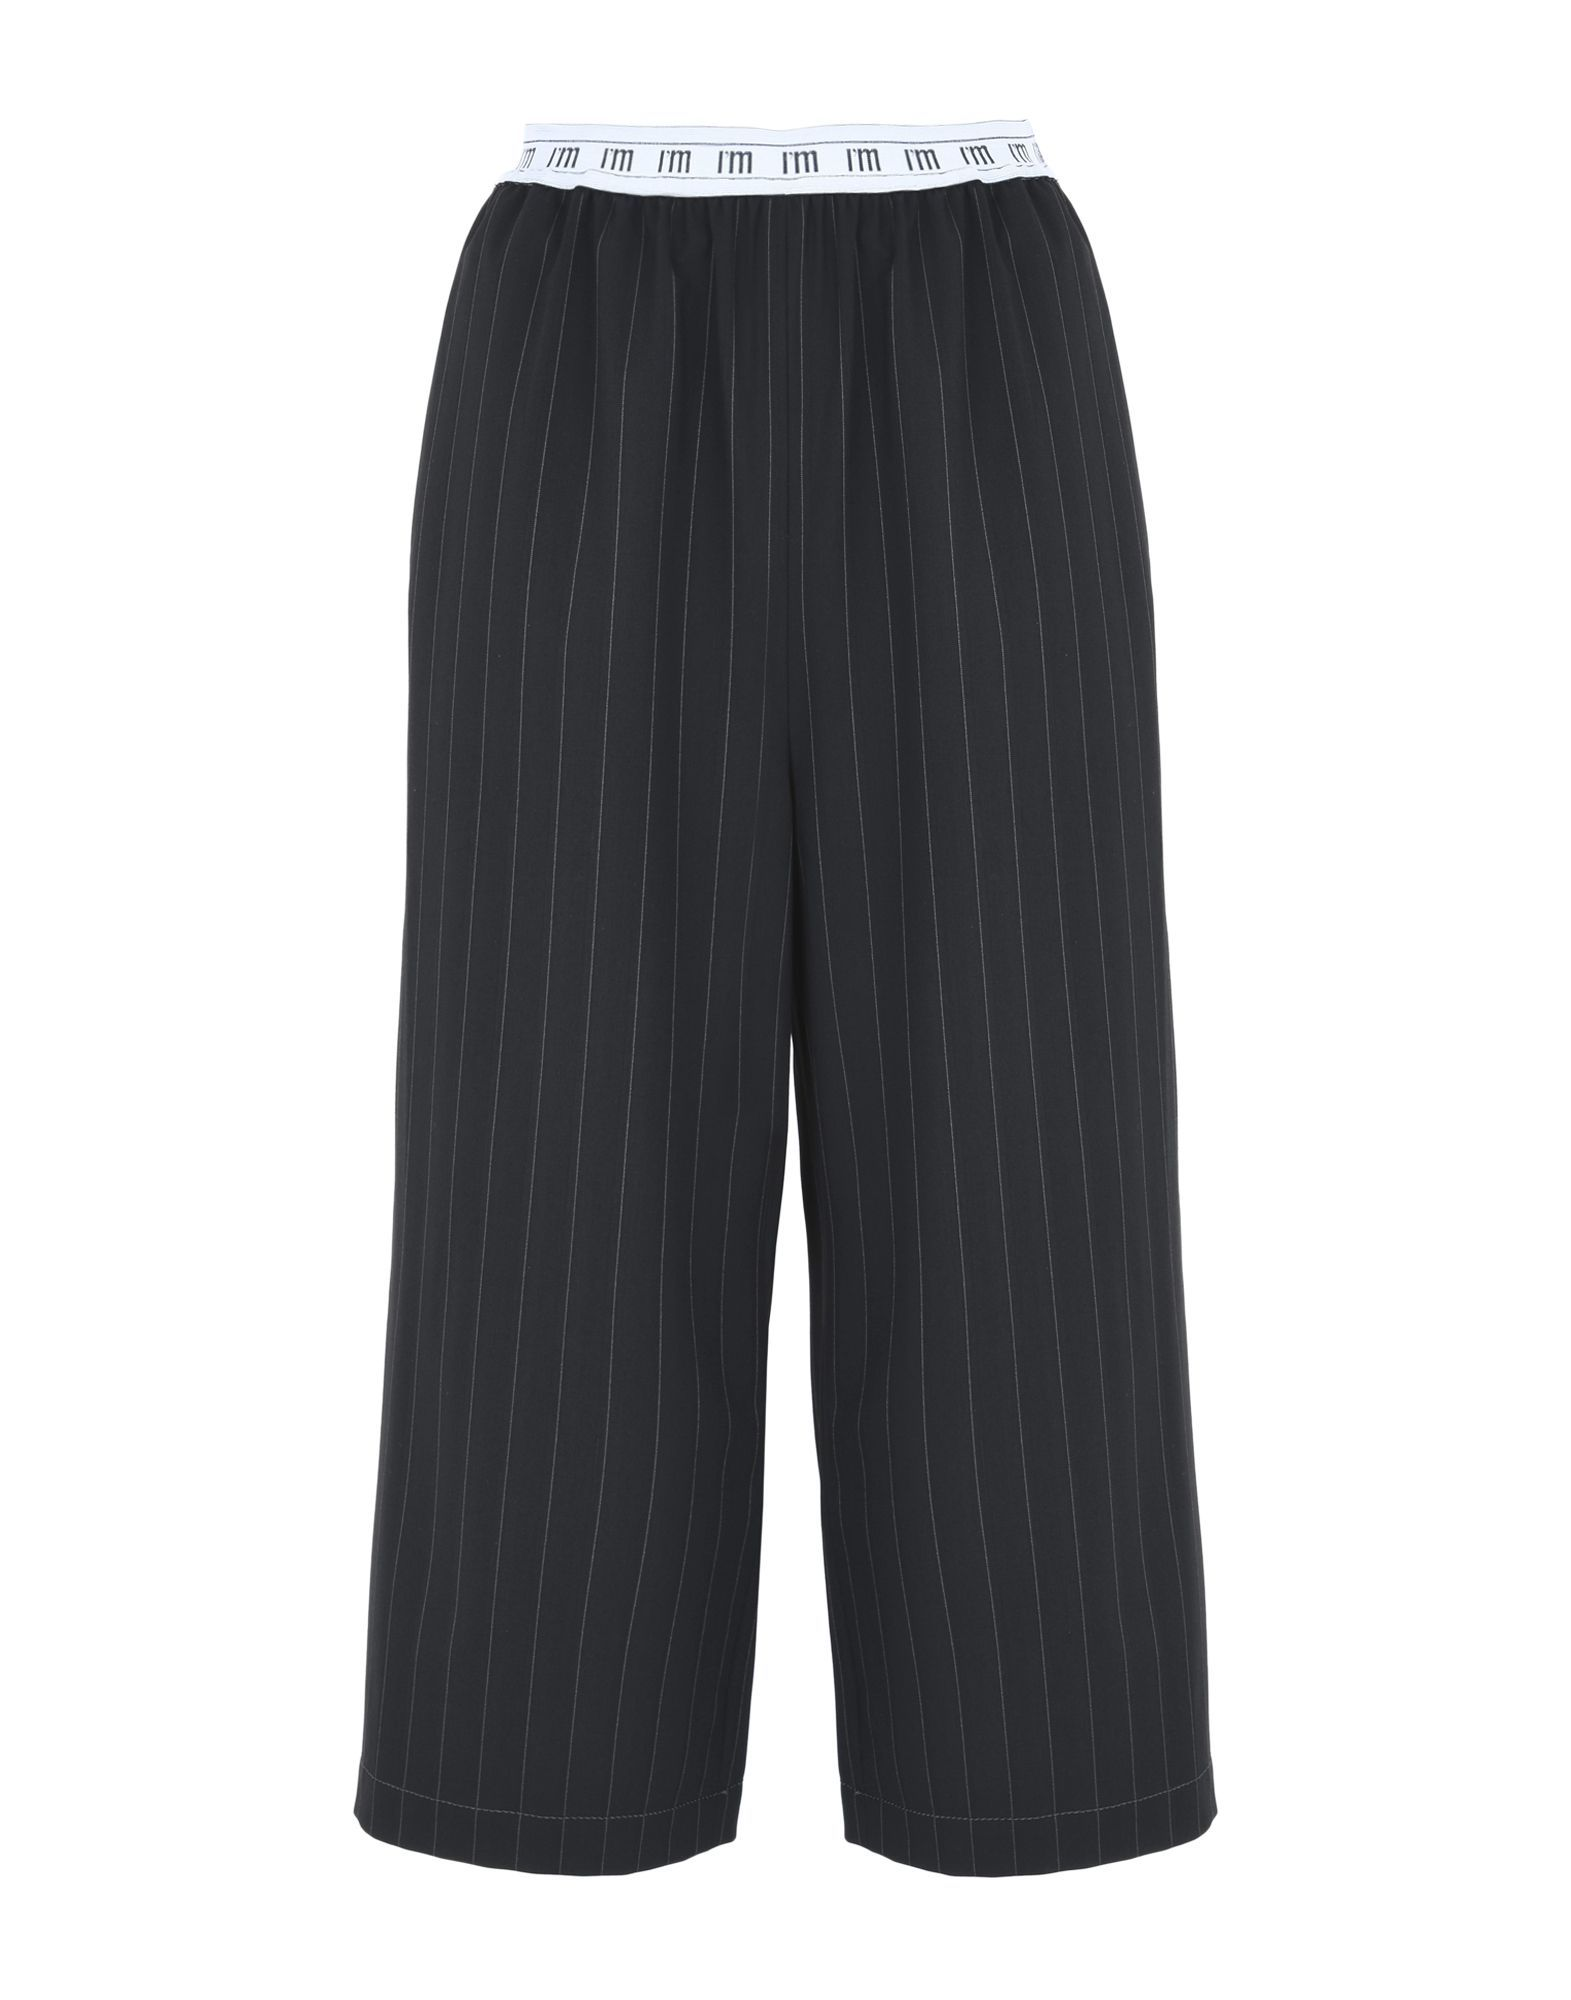 TROUSERS I'M Isola Marras Black Woman Polyester